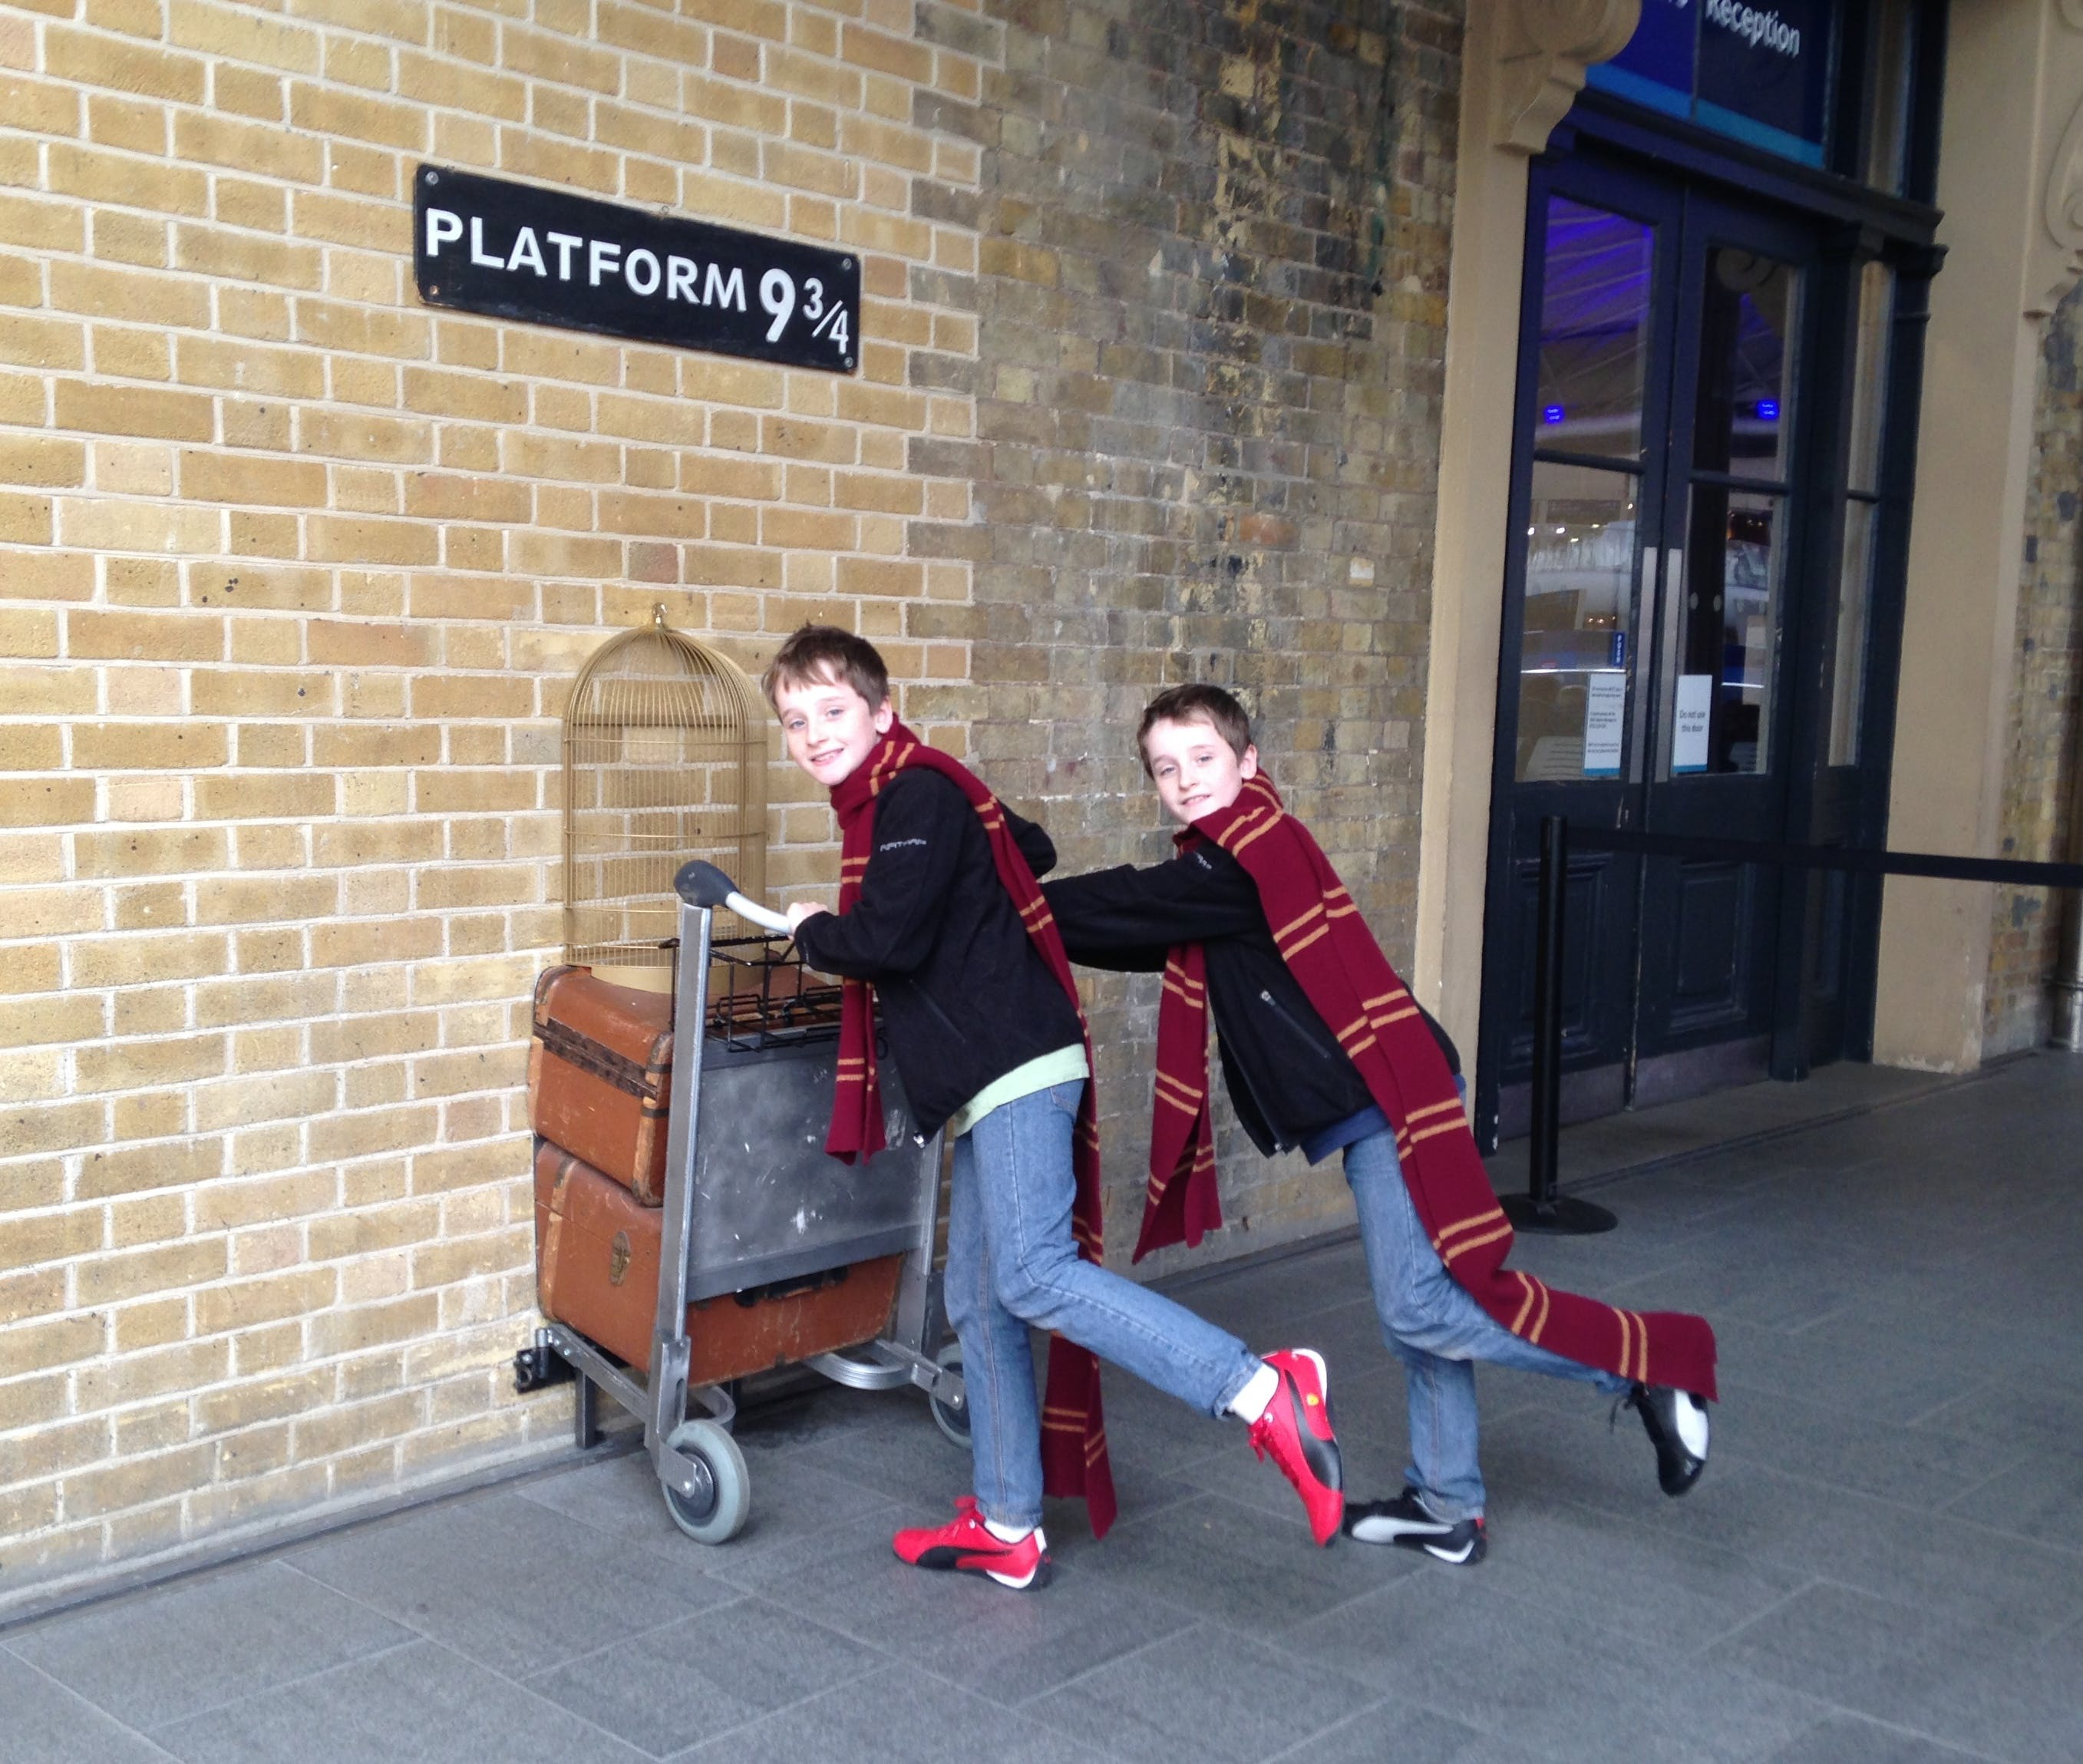 platform 9 3 4 kings cross station london kids